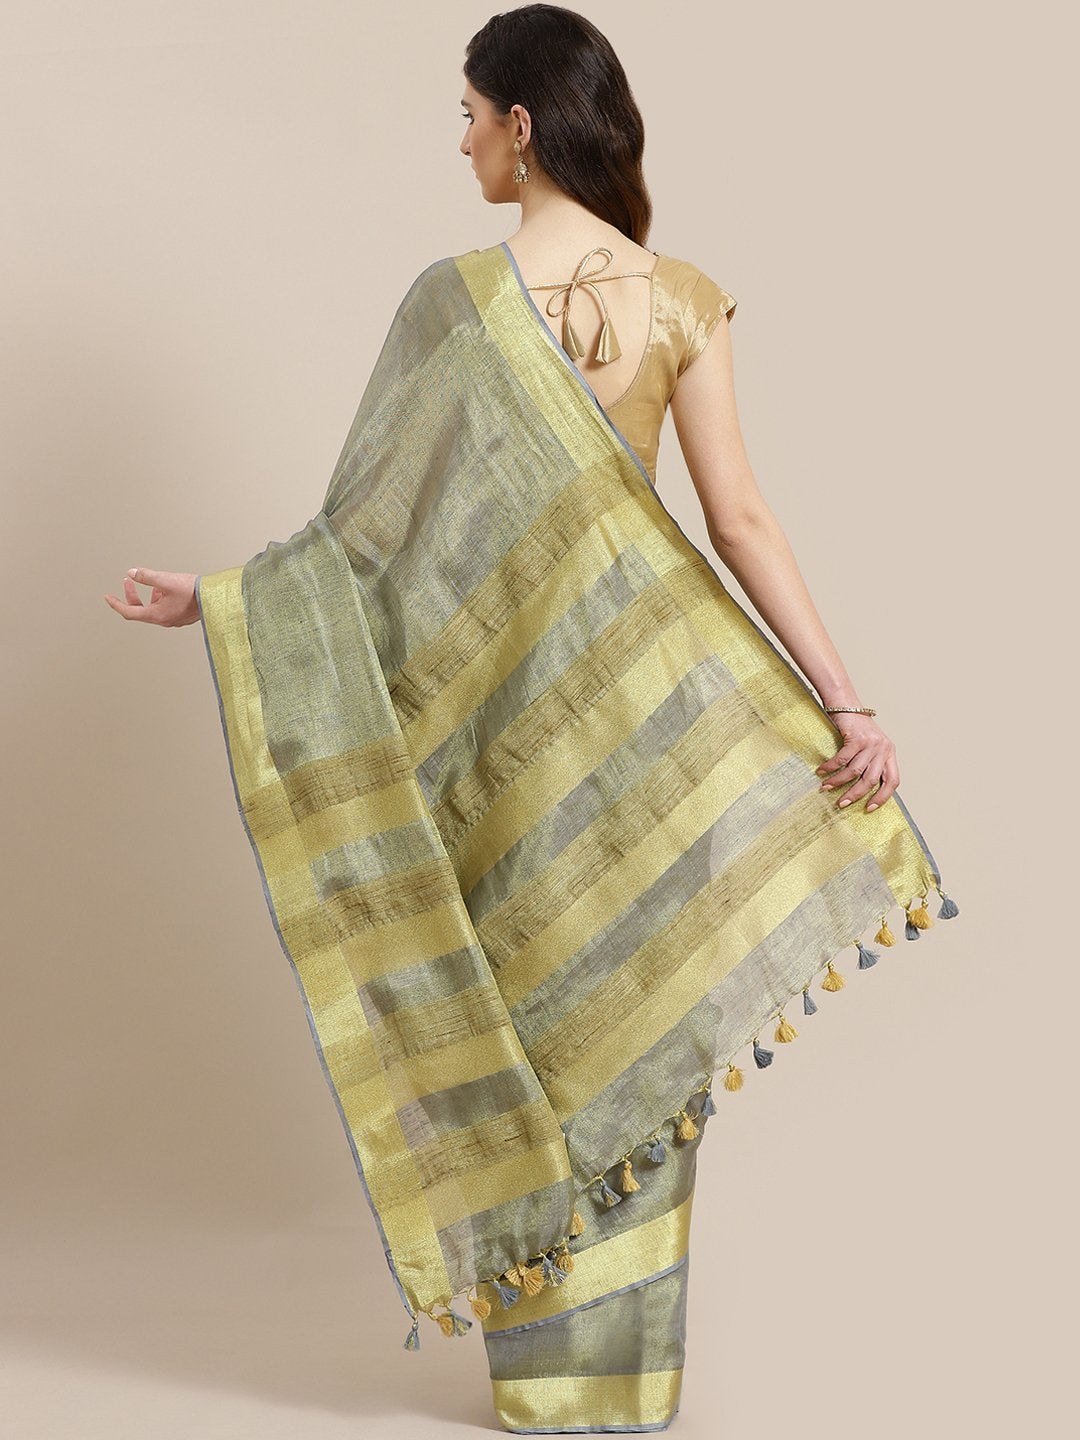 Grey Golden Dual-Tone Handwoven Handcrafted Solid Saree-Saree-Kalakari India-ALBGSA0004-Hand Woven, Sarees, Sustainable Fabrics, Tissue, Traditional Weave-[Linen,Ethnic,wear,Fashionista,Handloom,Handicraft,Indigo,blockprint,block,print,Cotton,Chanderi,Blue, latest,classy,party,bollywood,trendy,summer,style,traditional,formal,elegant,unique,style,hand,block,print, dabu,booti,gift,present,glamorous,affordable,collectible,Sari,Saree,printed, holi, Diwali, birthday, anniversary, sustainable, organic